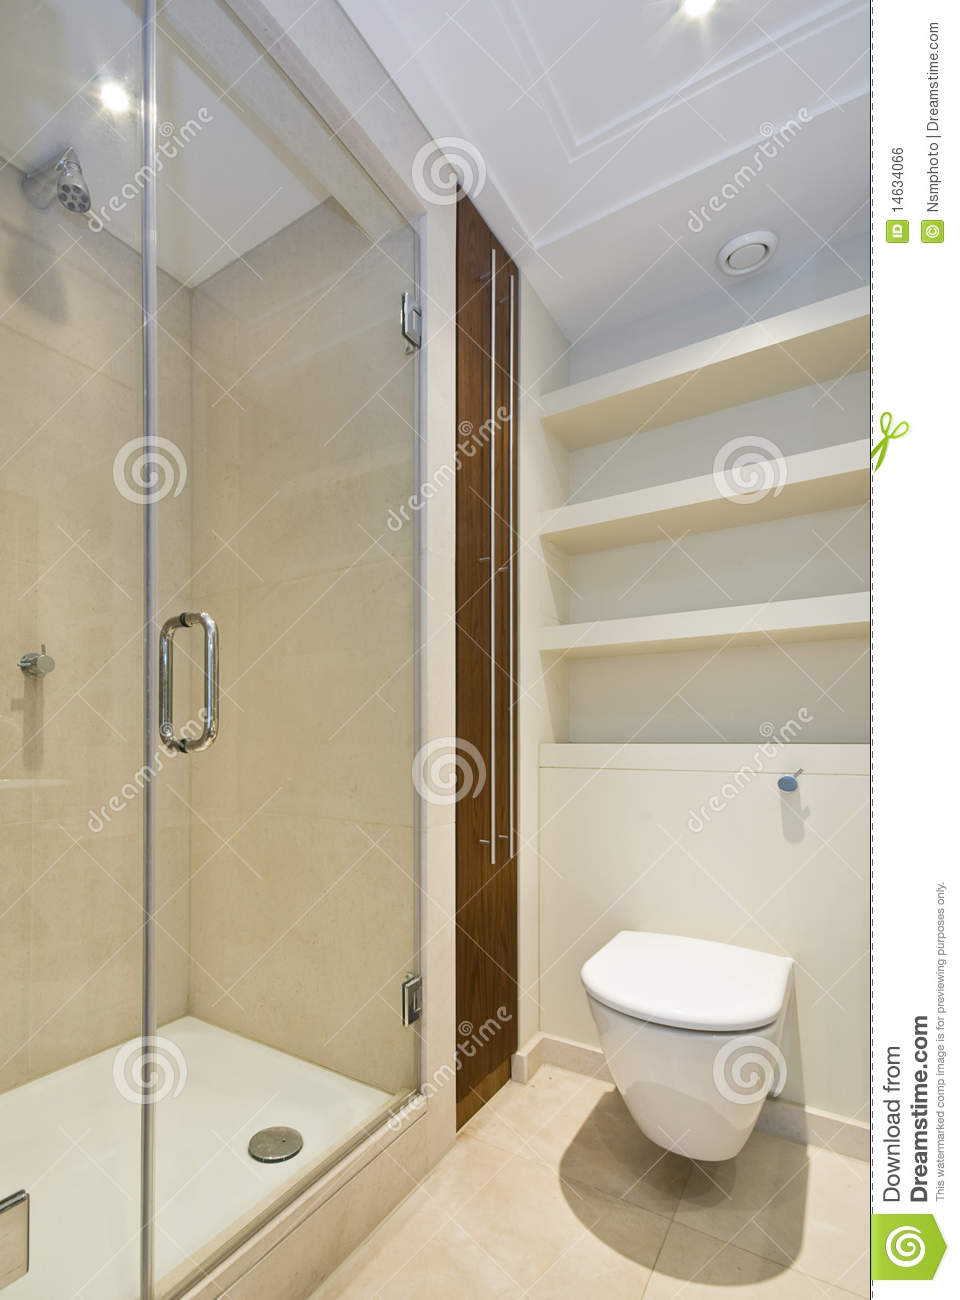 Detail Of A Modern En-suite Shower Room Stock Photo ...